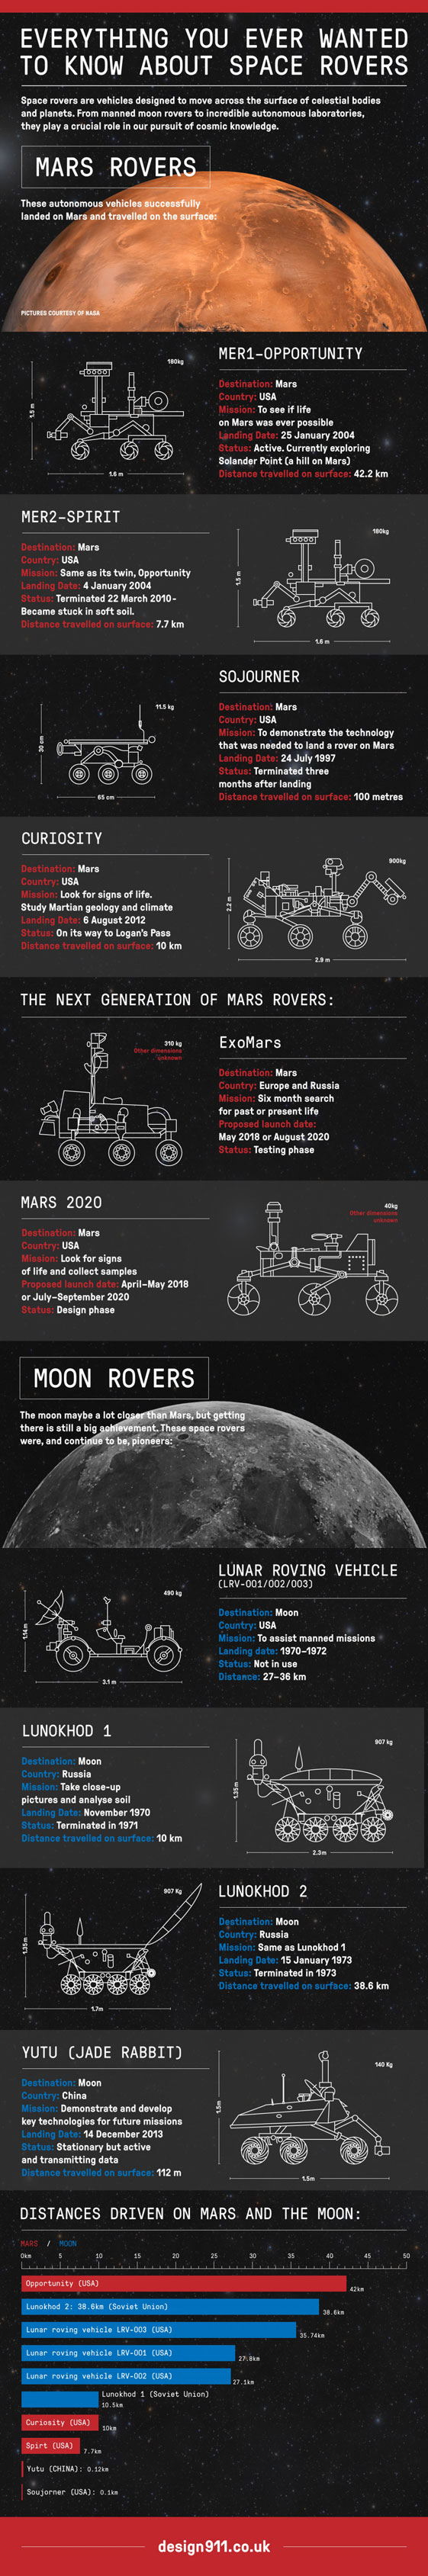 space-rovers